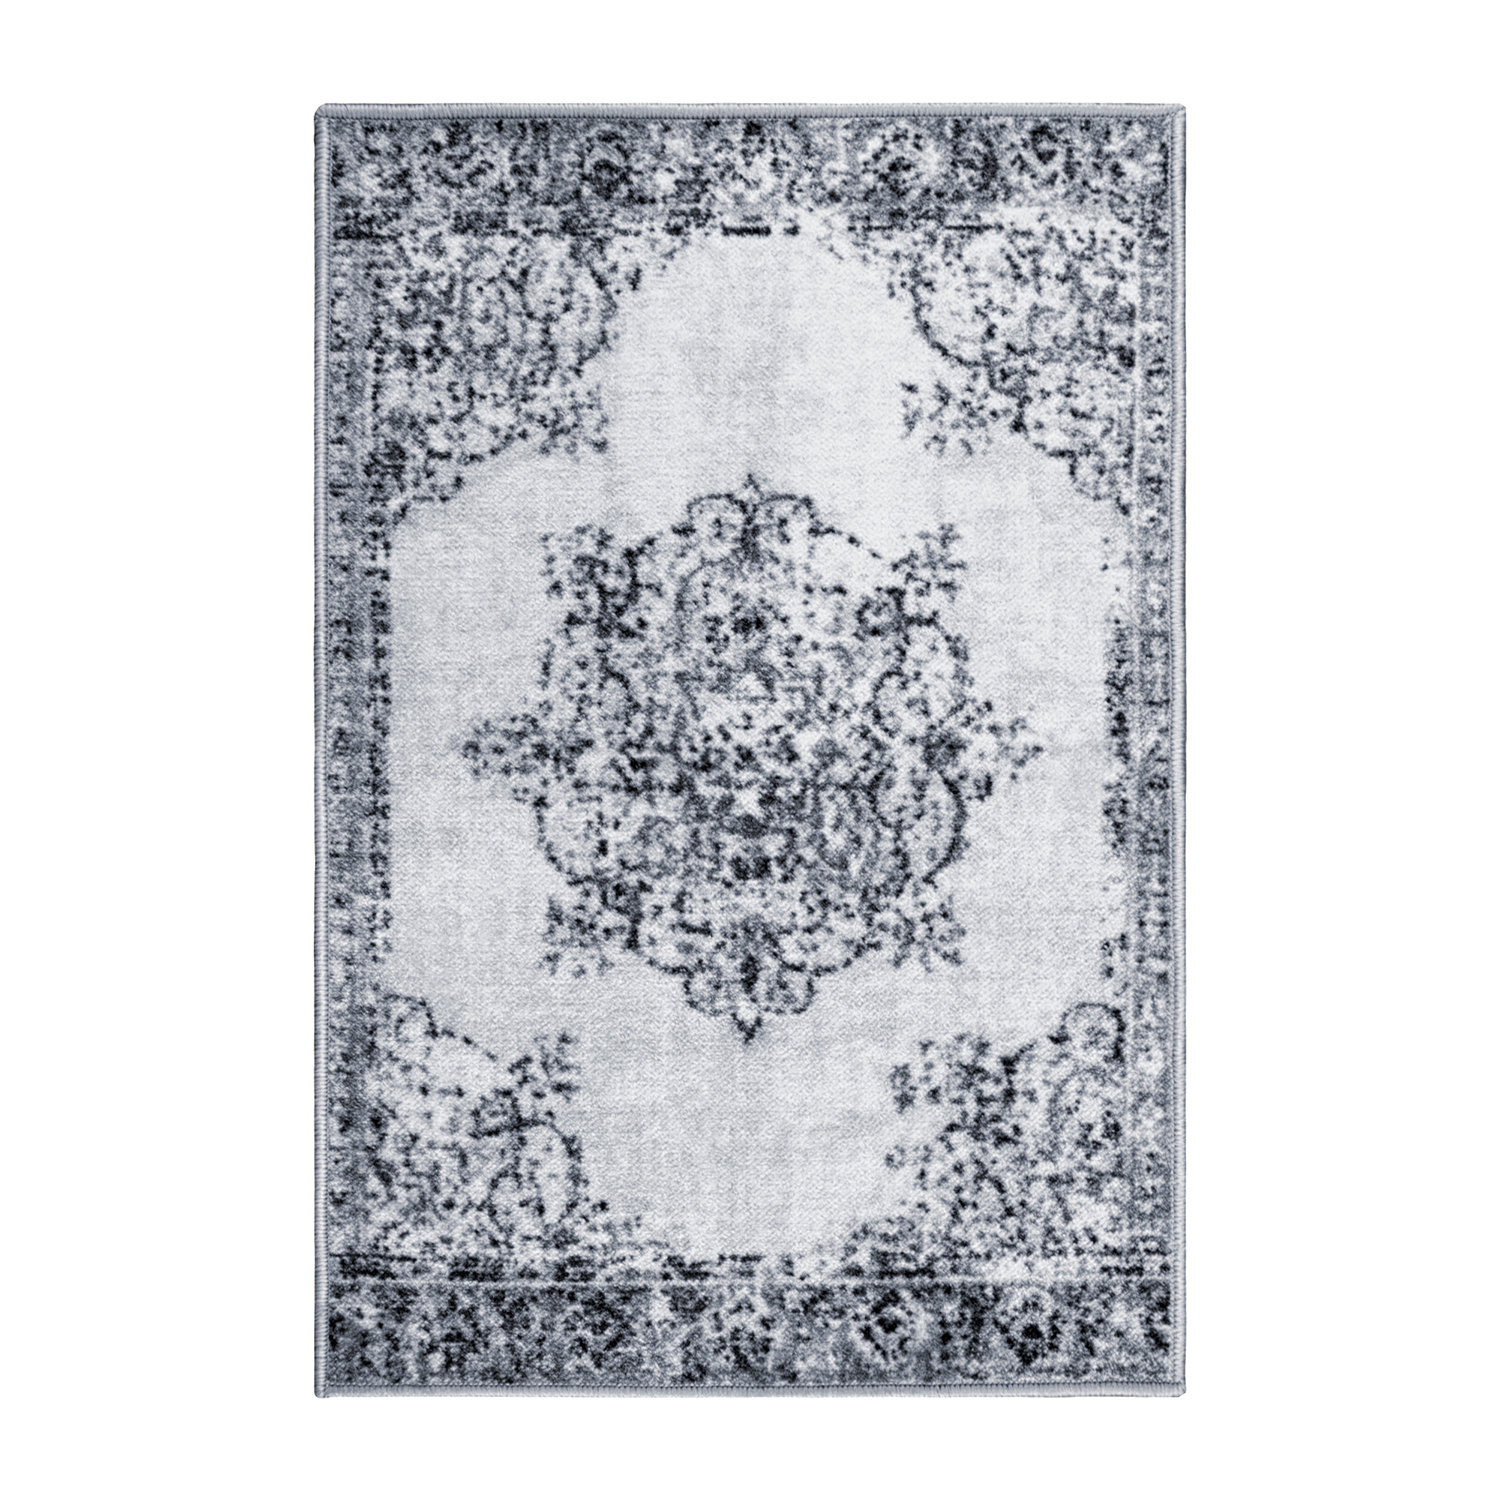 Decklan Digitally Printed Area Rug Collection